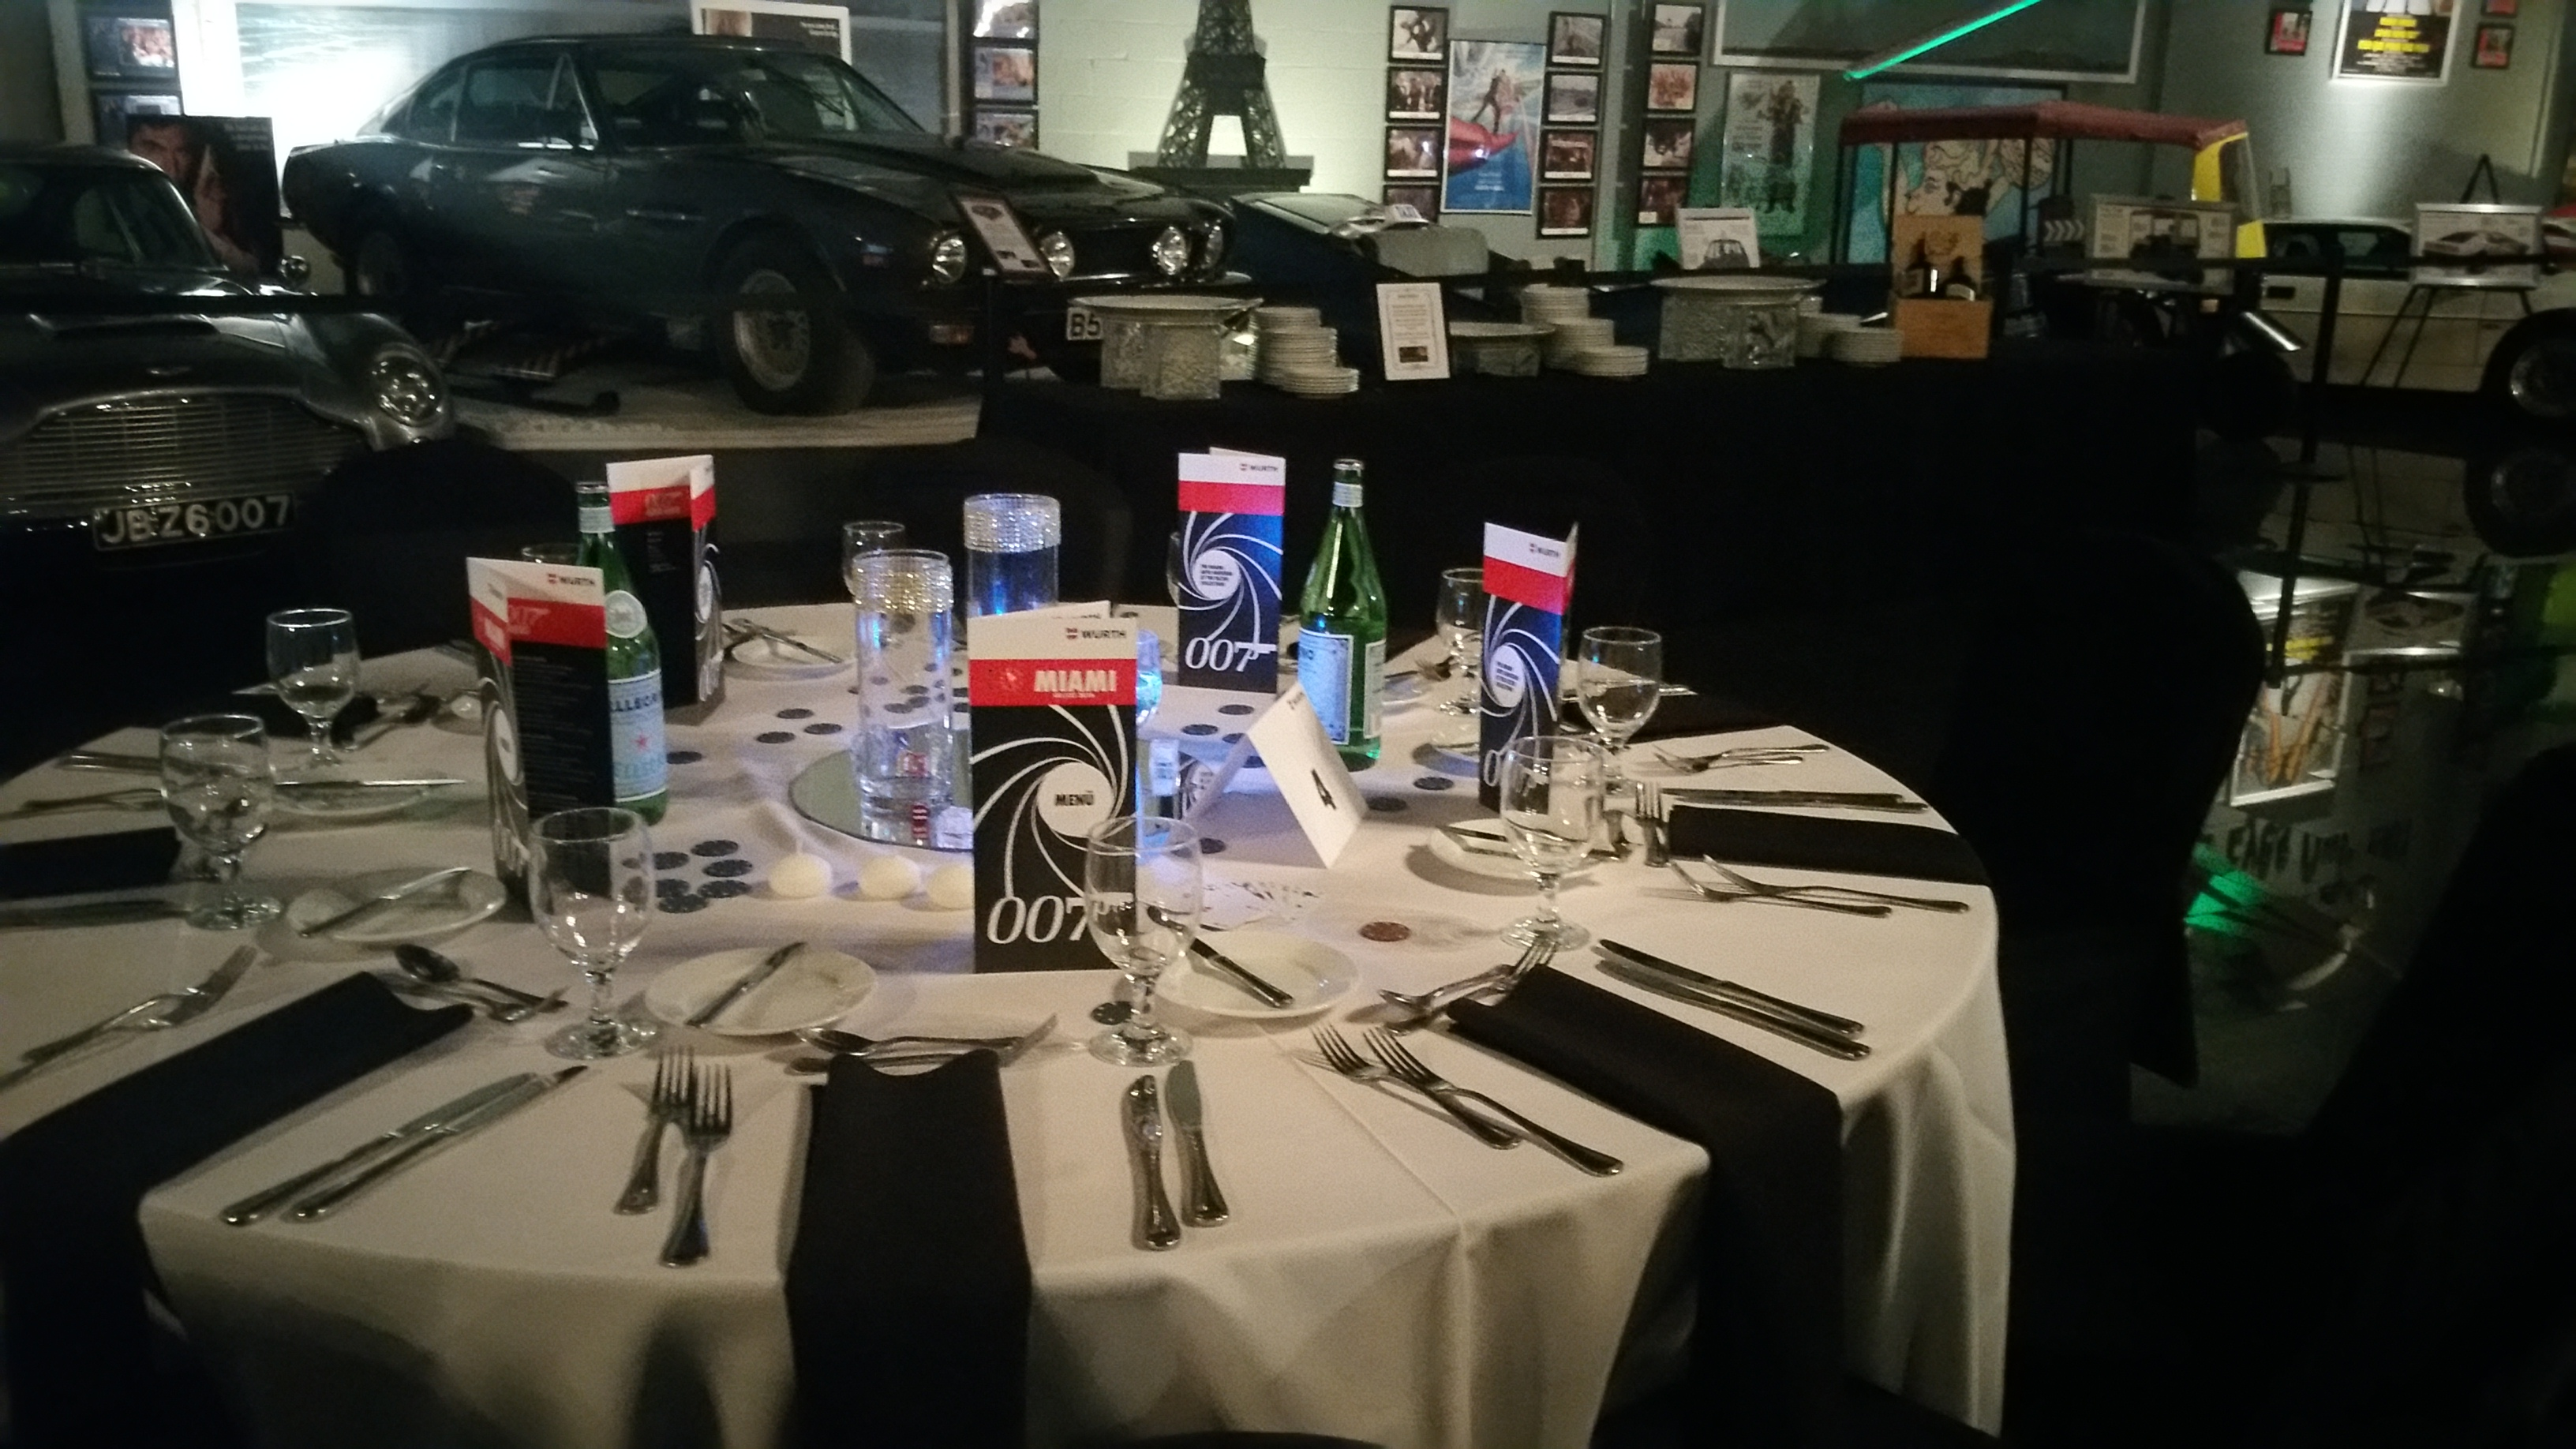 007 Table Set Up